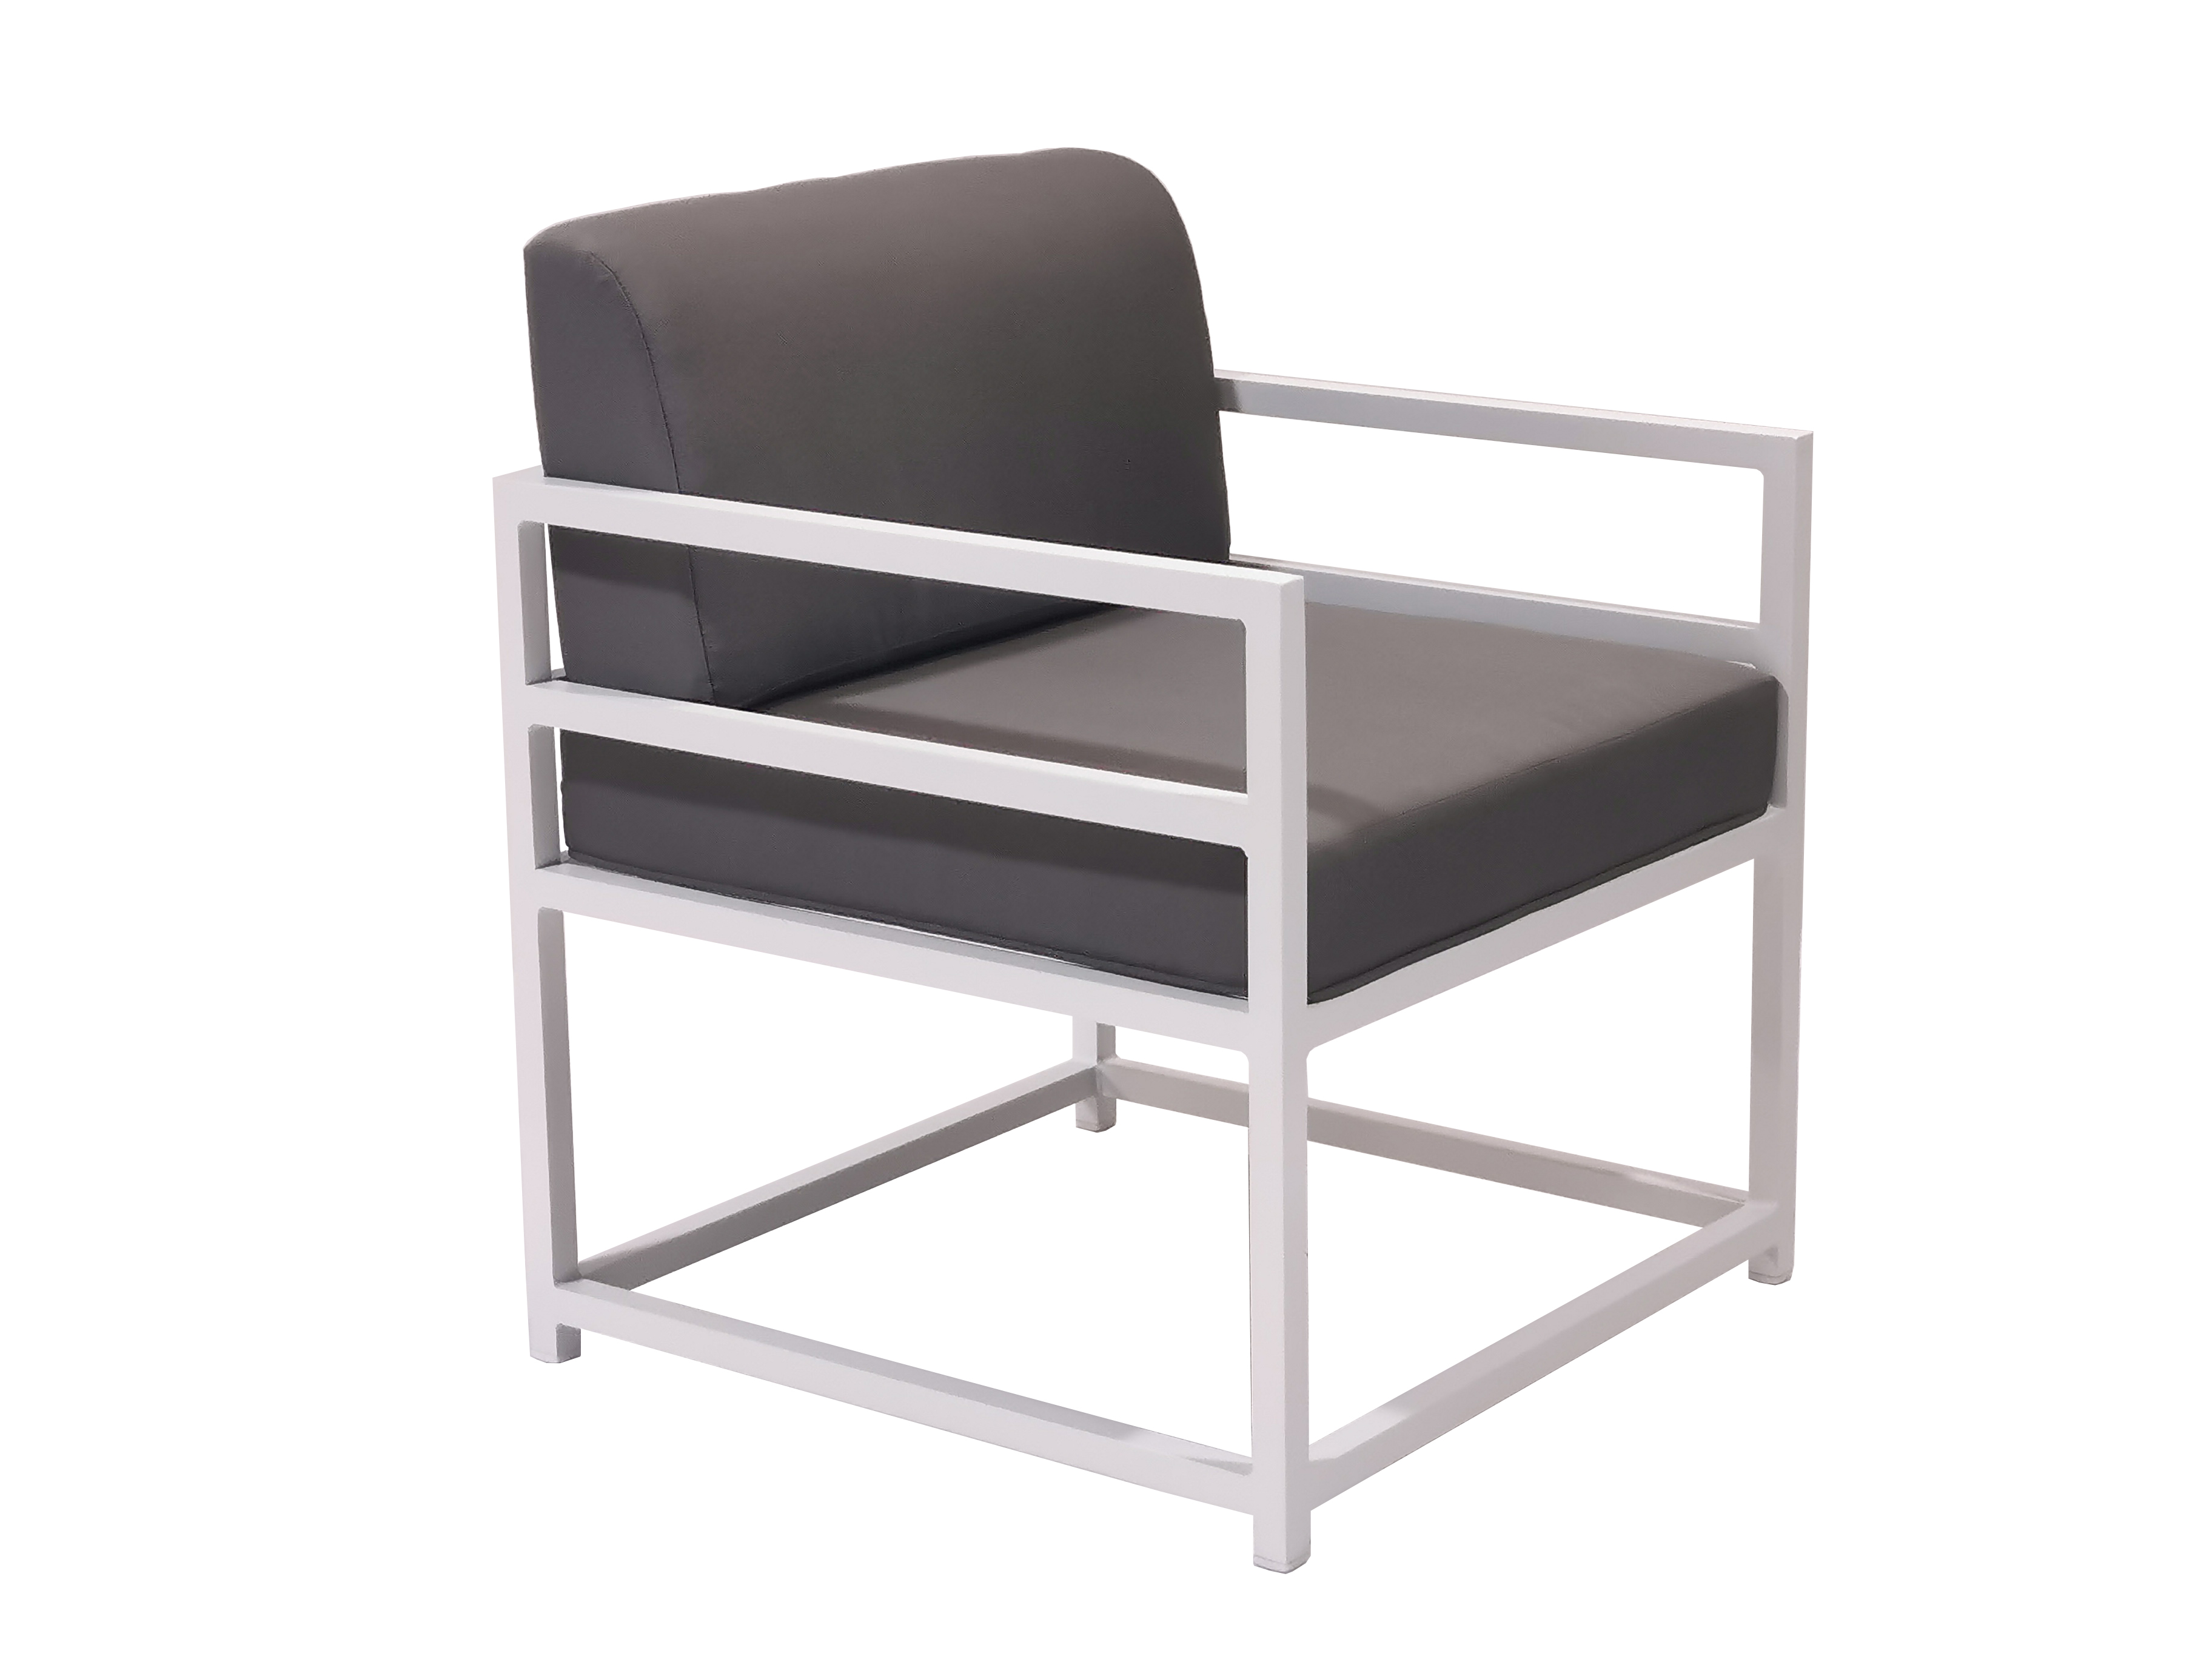 CONDO SOFA ARM CHAIR AW